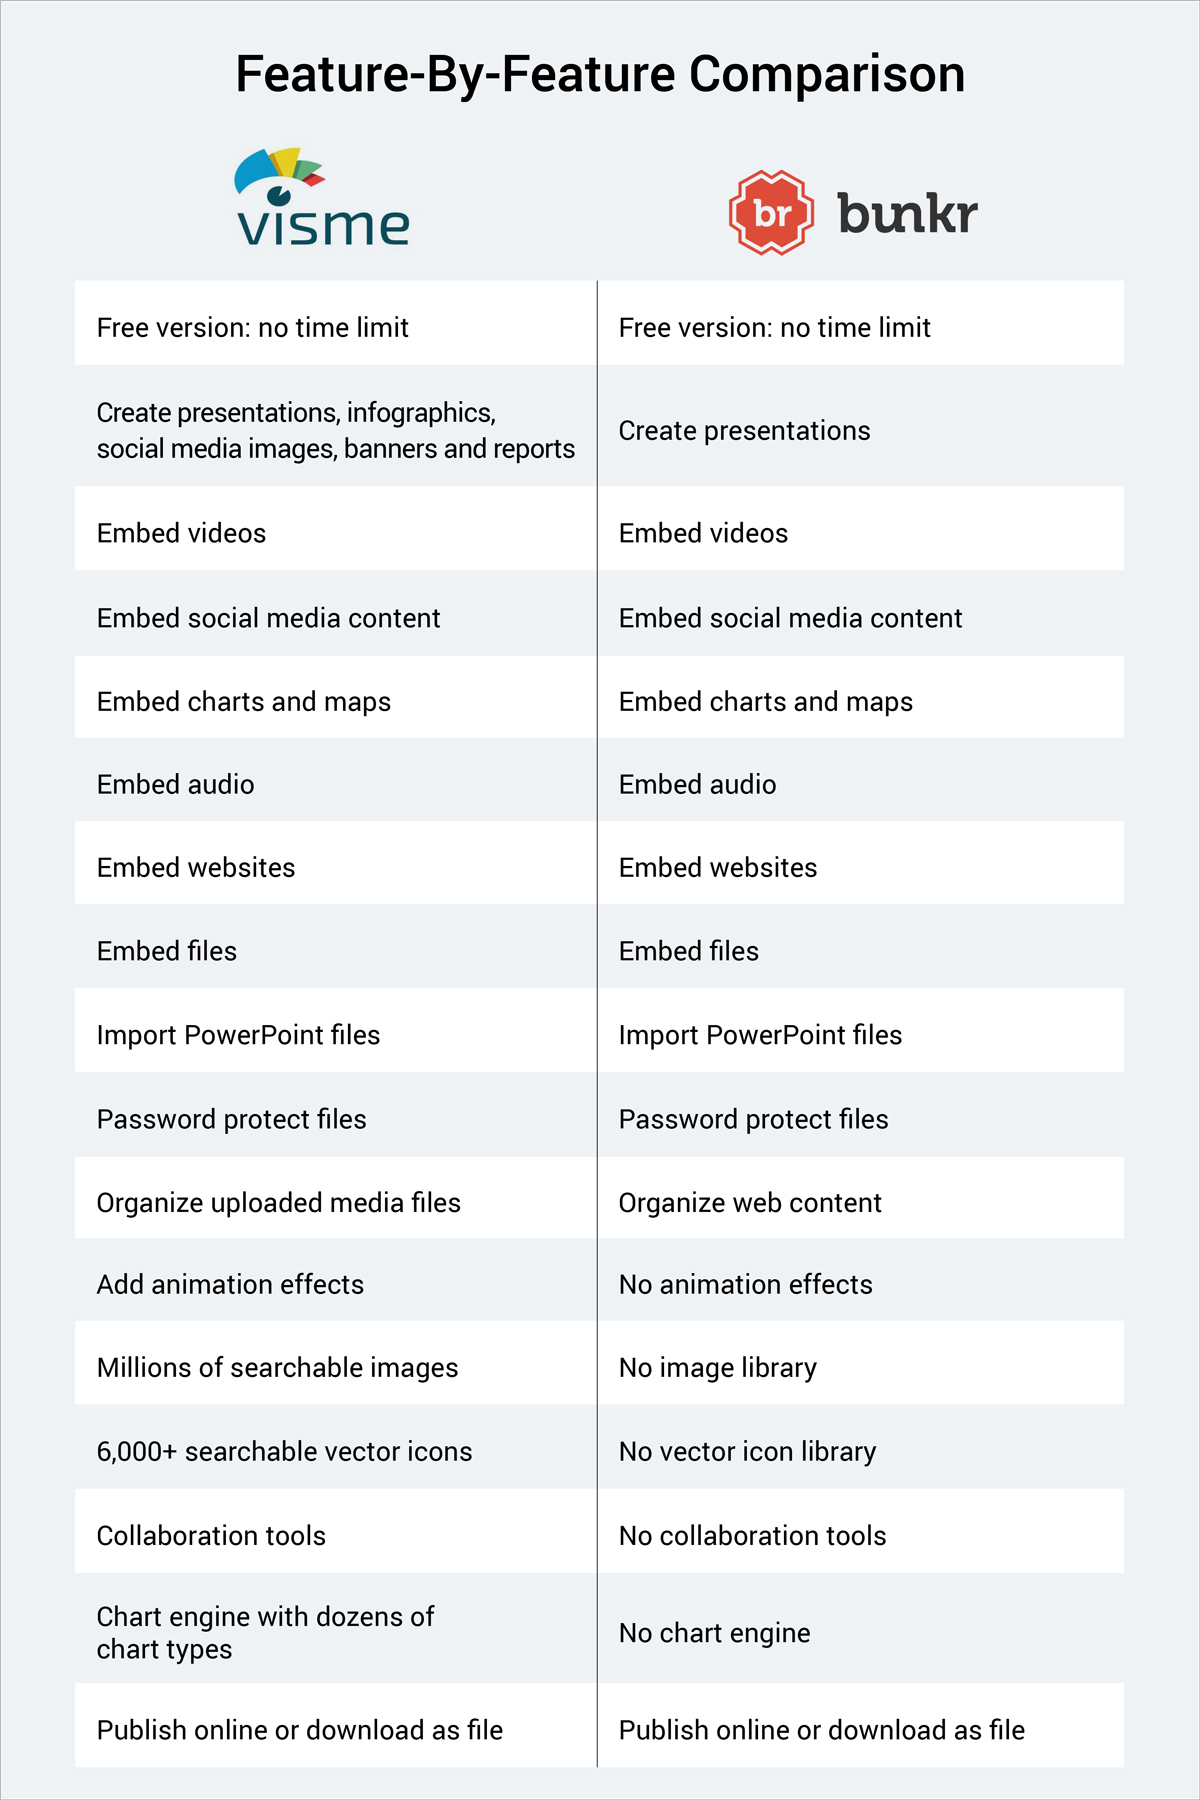 bunkr alternative visme versus bunkr feature by feature comparison table